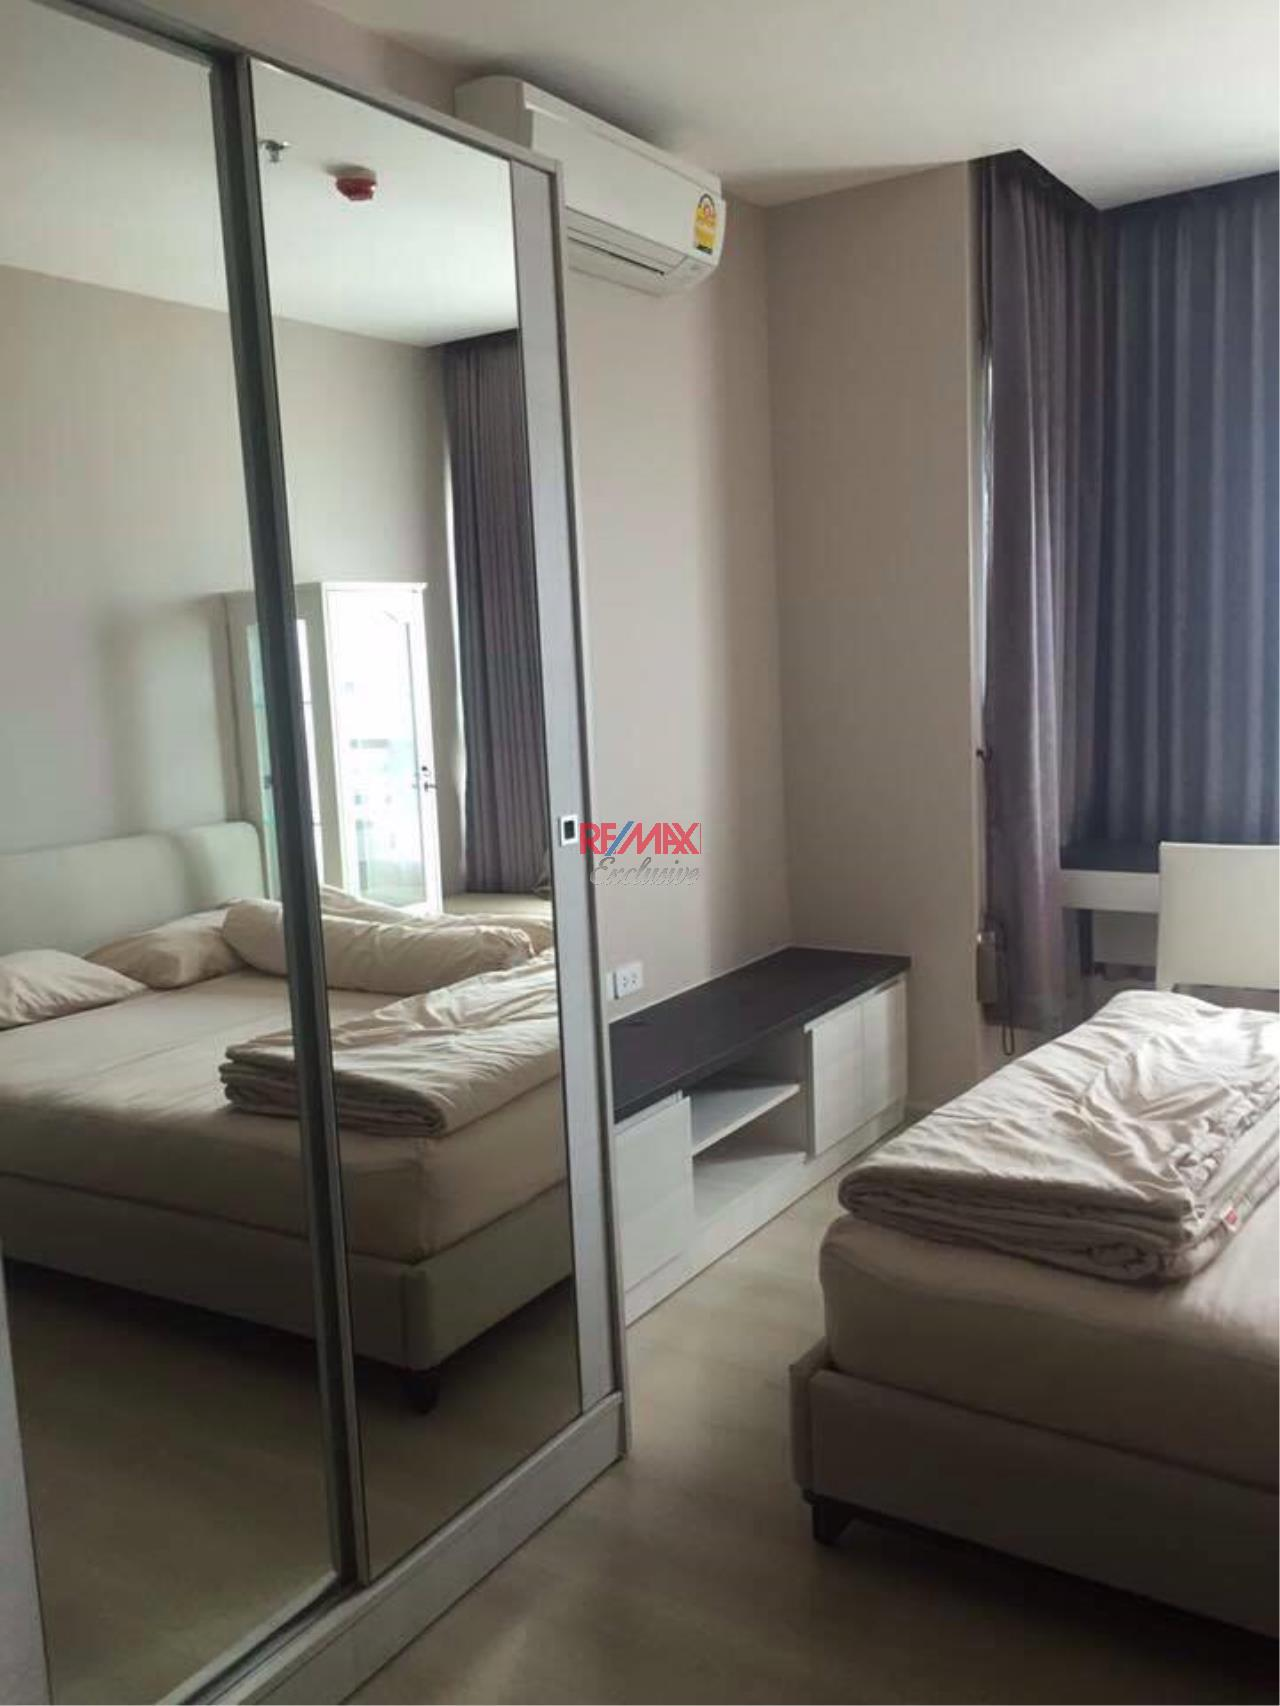 RE/MAX Exclusive Agency's Trendy 1 bedroom for sale @Life Ratchada - Huay Kwang 4